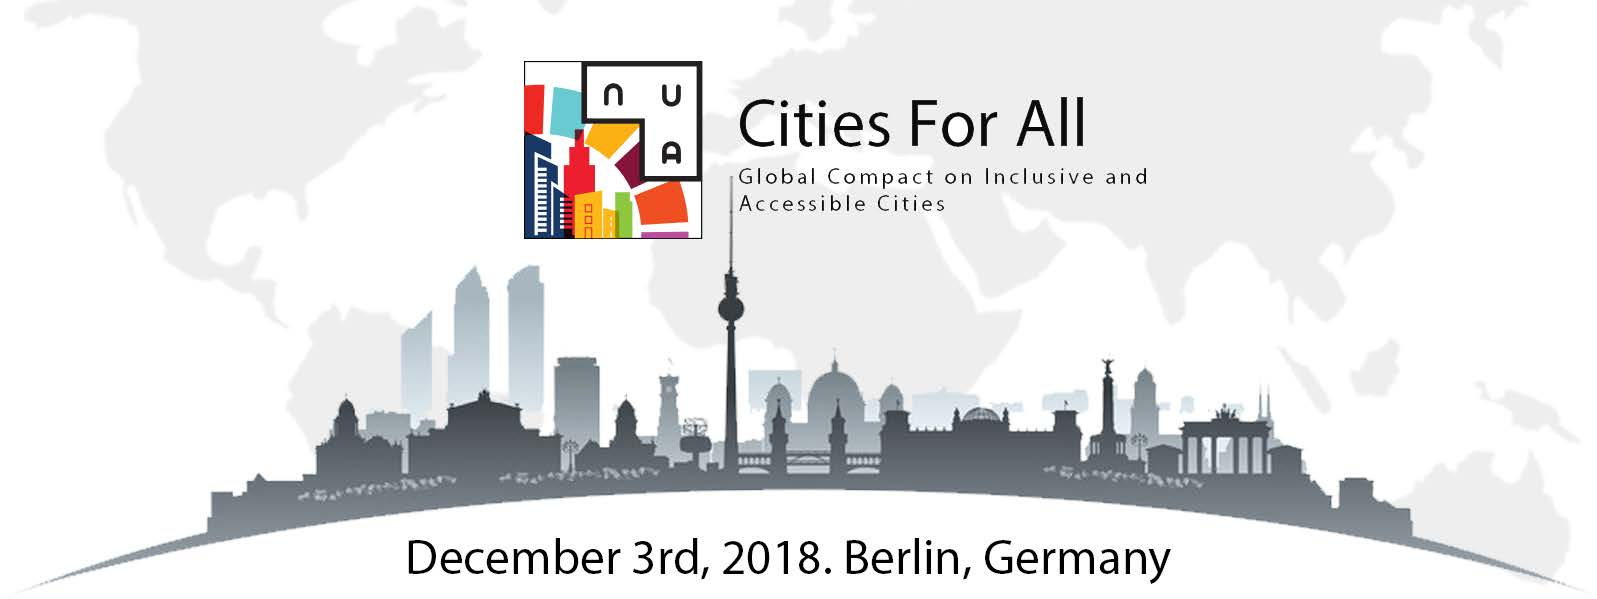 Cities for All logo